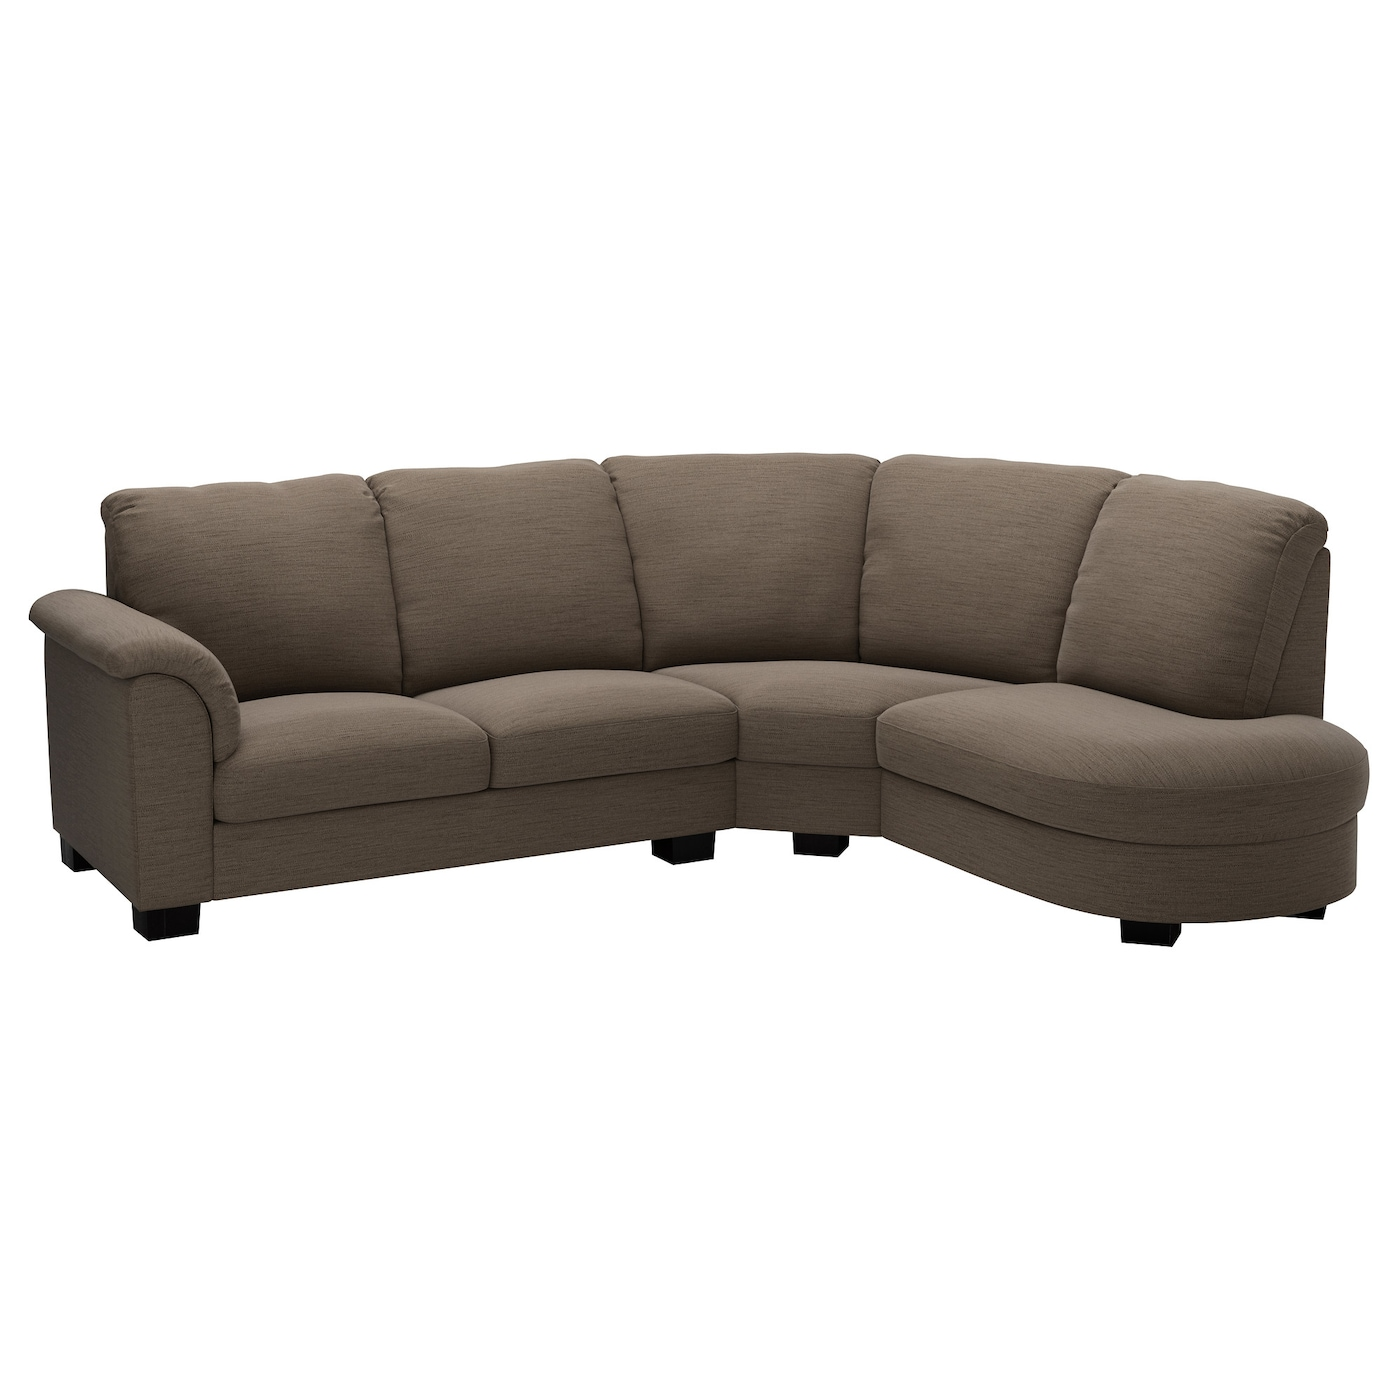 Tidafors corner sofa with arm left hensta light brown ikea for Sofas rinconeras ikea